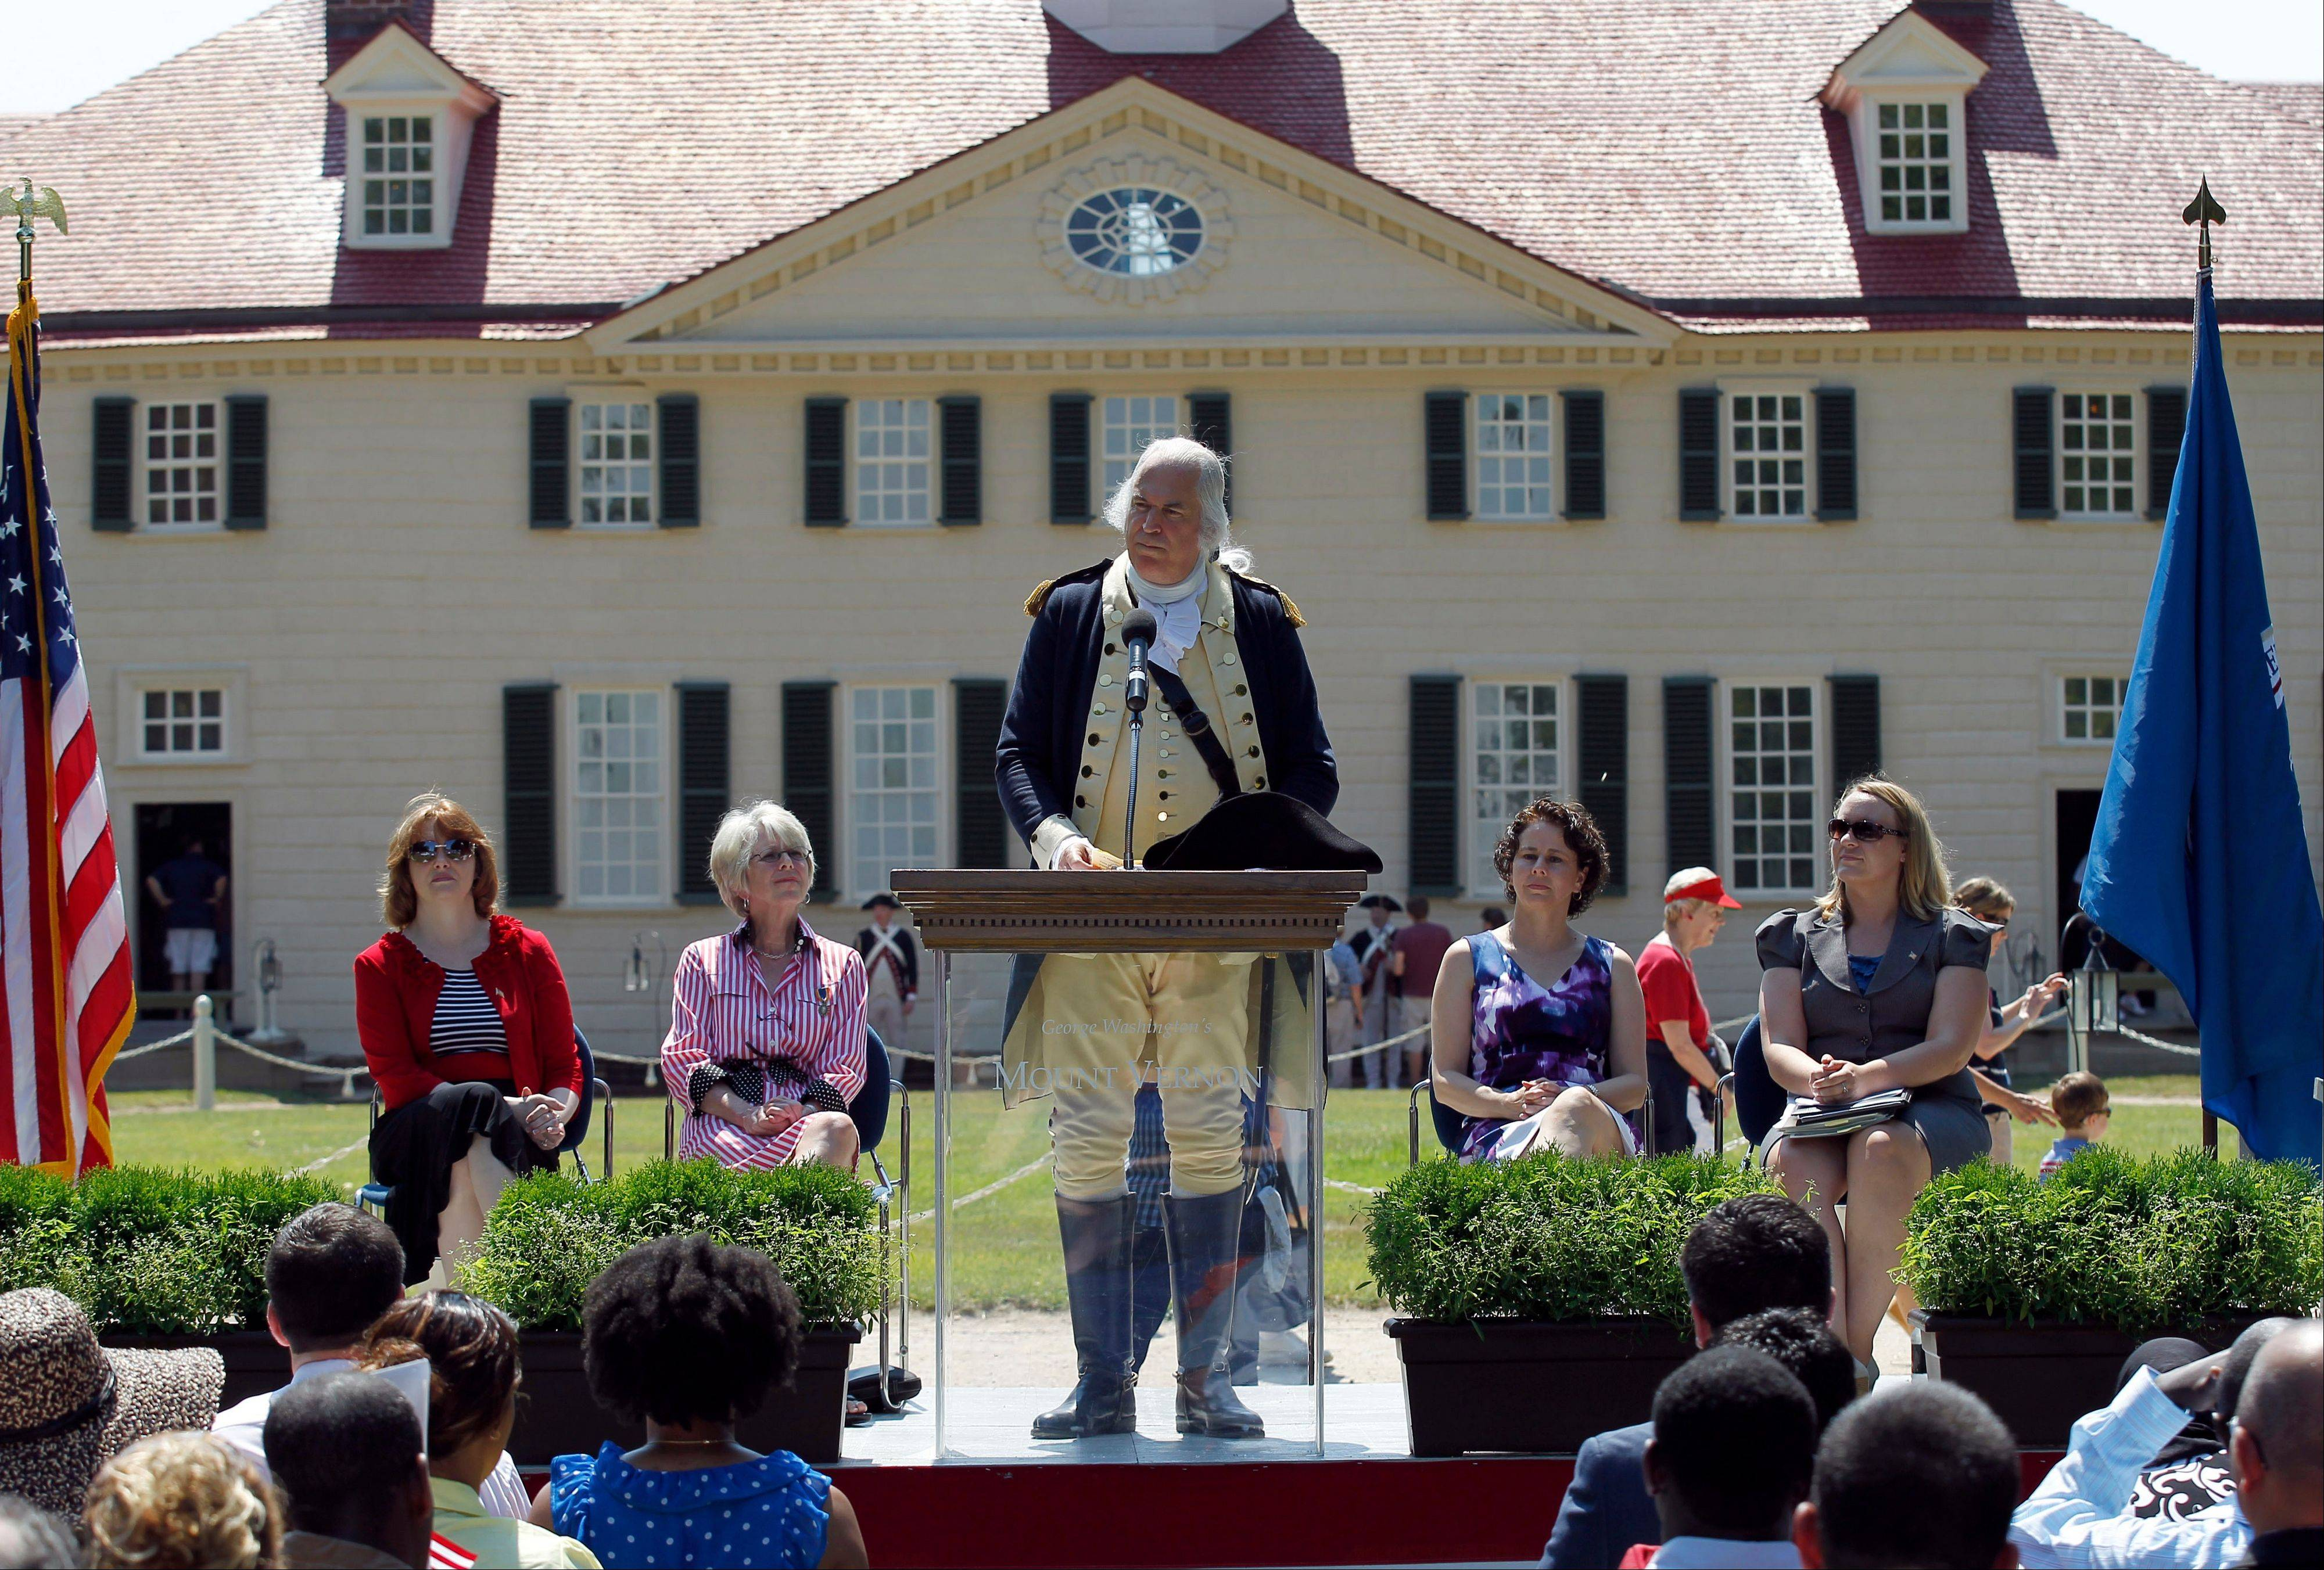 A re-enactor portraying Gen. George Washington speaks to candidates for naturalization during a naturalization ceremony at George Washington's Mount Vernon estate, Wednesday, July 4, 2012 in Alexandria, Va.